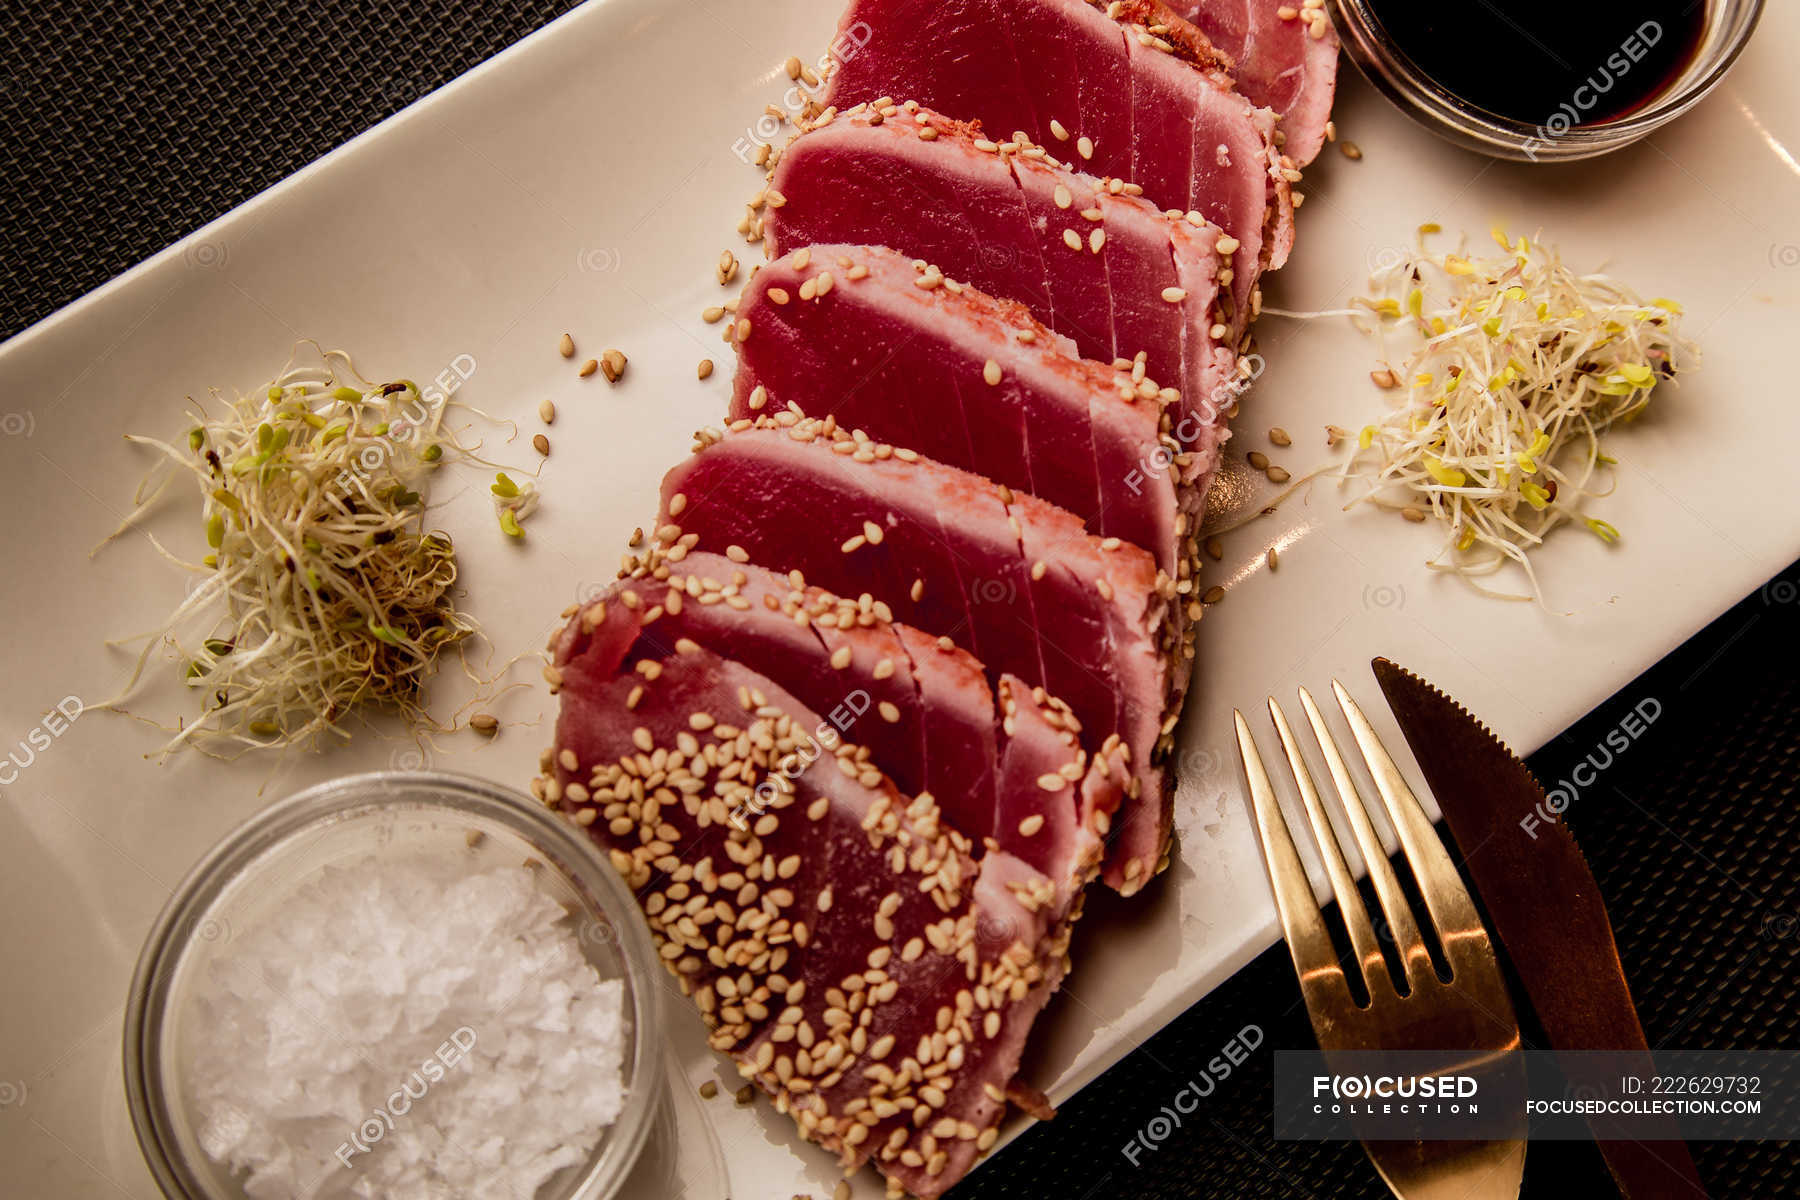 Raw Sliced Tuna Steak On Platter With Sauce On Black Background Dish Close Up Stock Photo 222629732